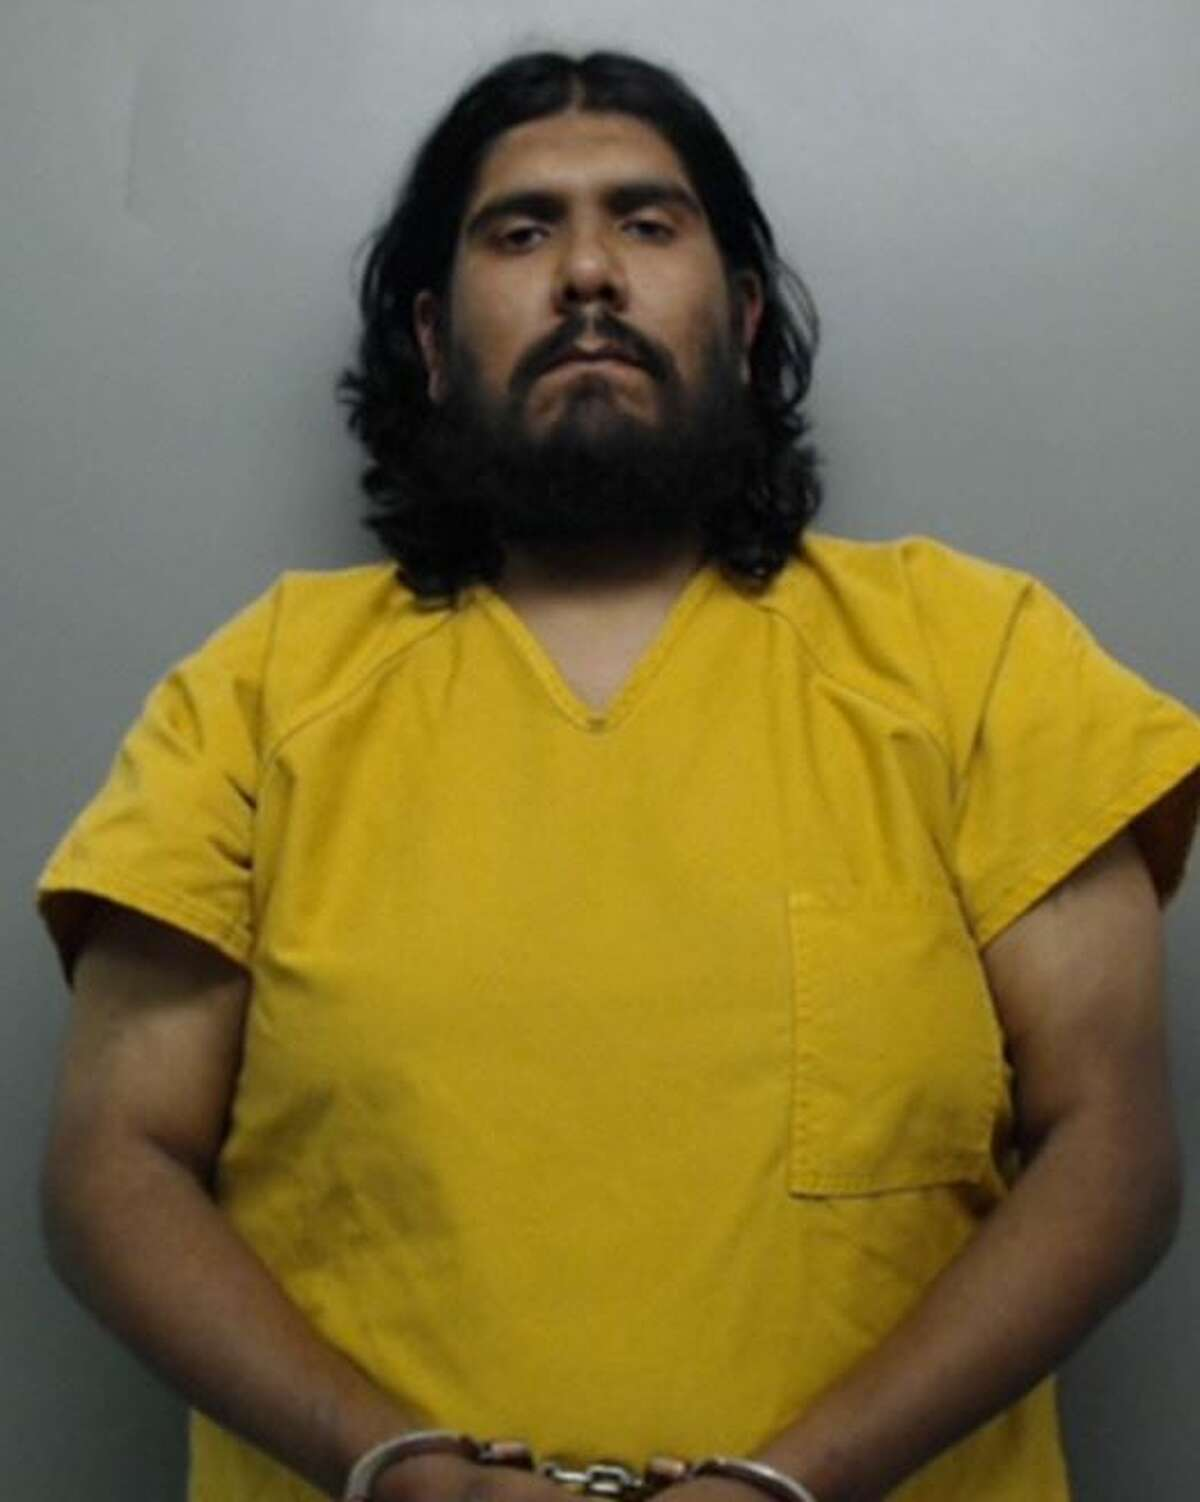 Juan Carlos Moreno, 34, was charged with indecent exposure, a Class B misdemeanor that could carry a punishment of up to 180 days in jail and a $2,000 fine.